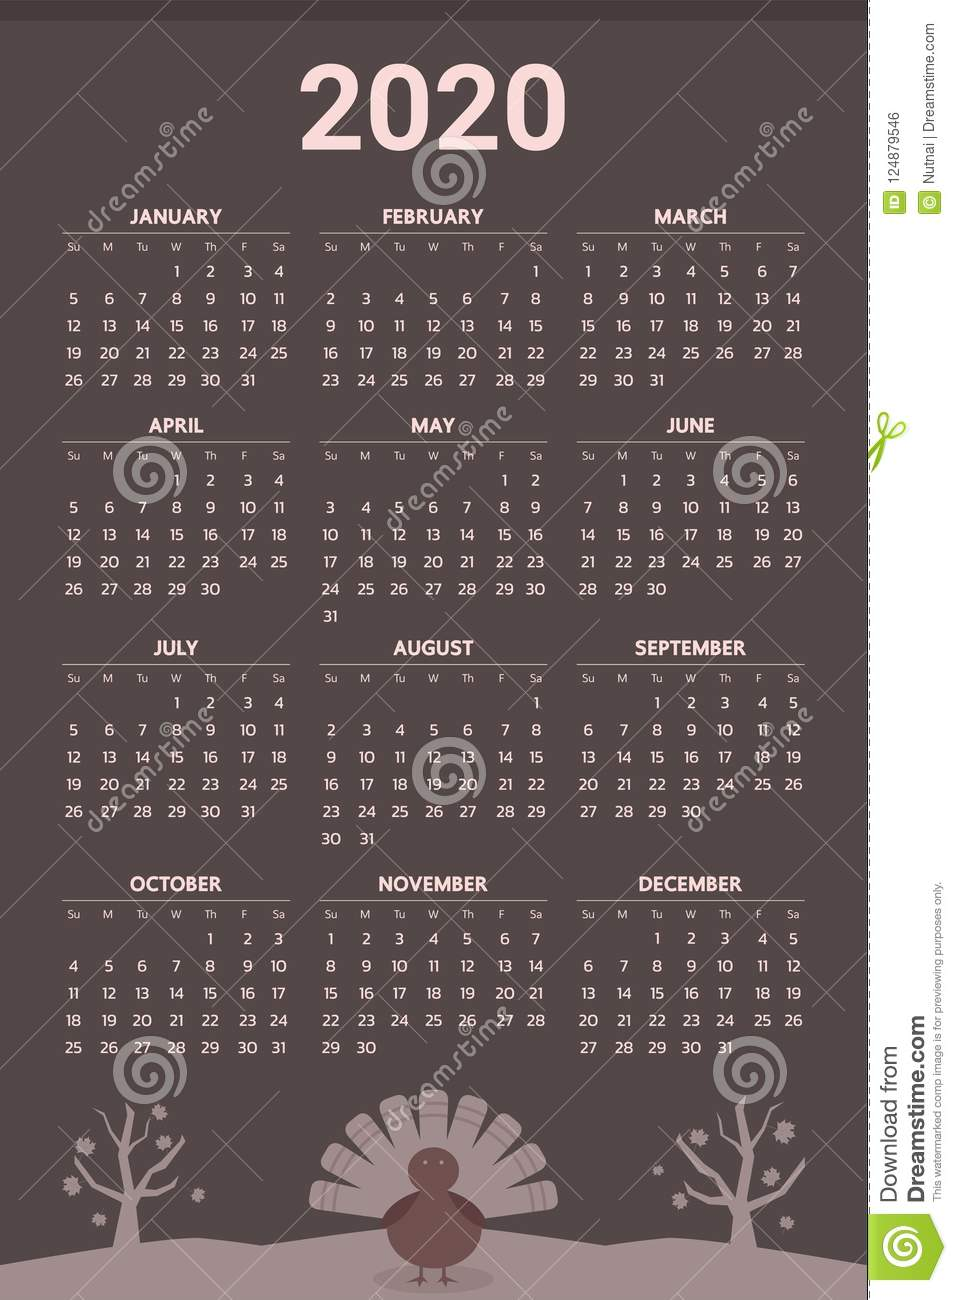 2020 Calendar Thanksgiving 2020 Calendar With Thanksgiving Theme   Vector Stock Vector